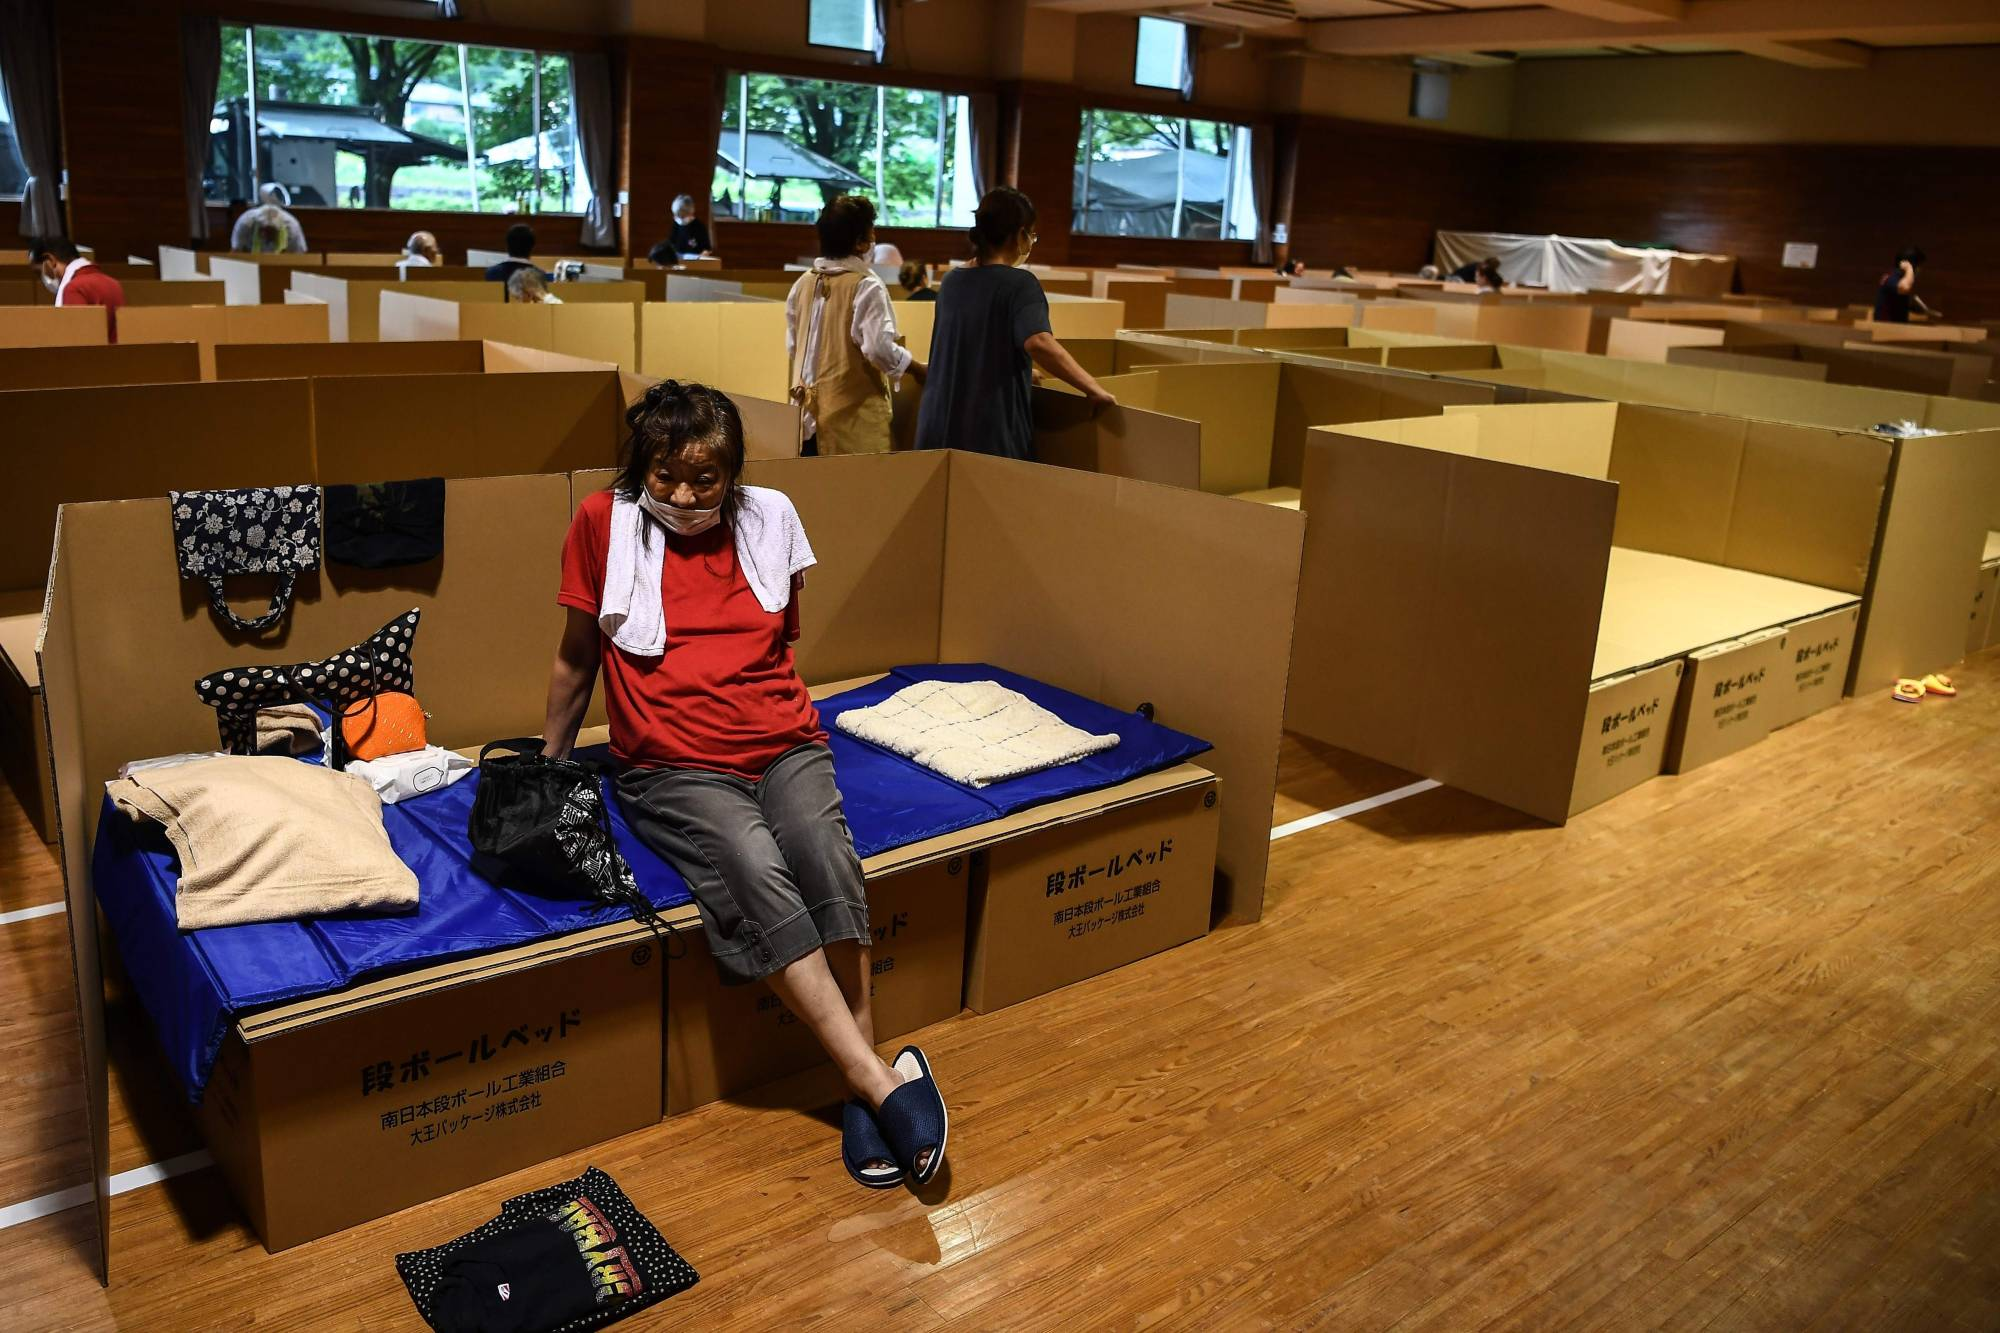 As well as simple partitions, companies have been making cardboard beds for evacuation shelters in Japan. | AFP-JIJI